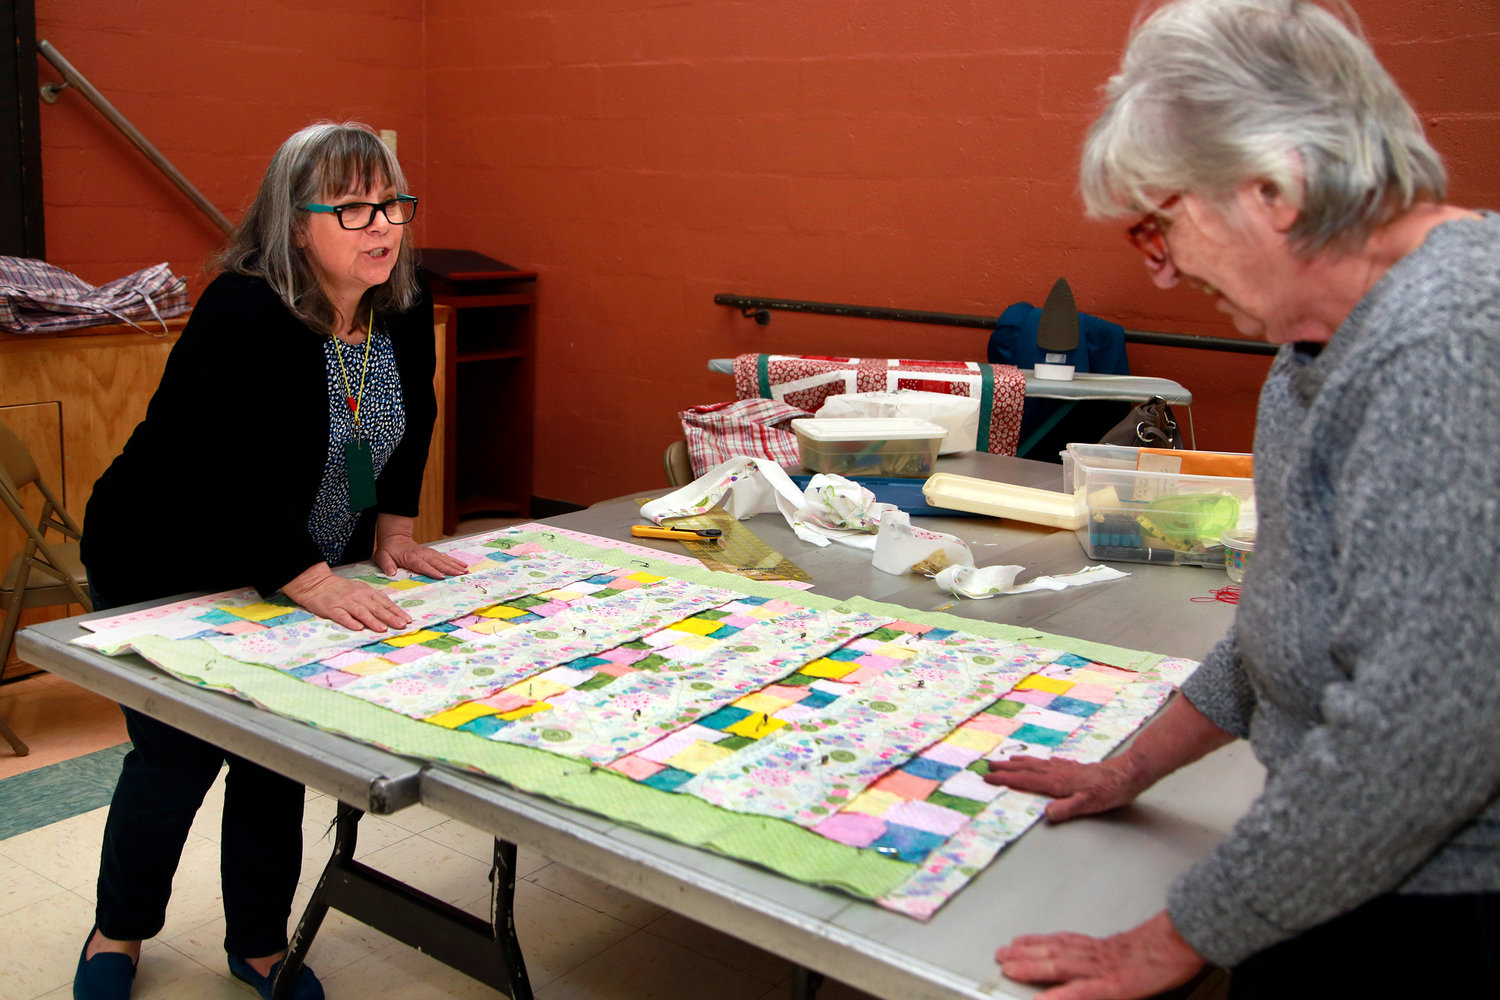 Kim Chiusano and Paula Mazzola worked on a quilt last week.